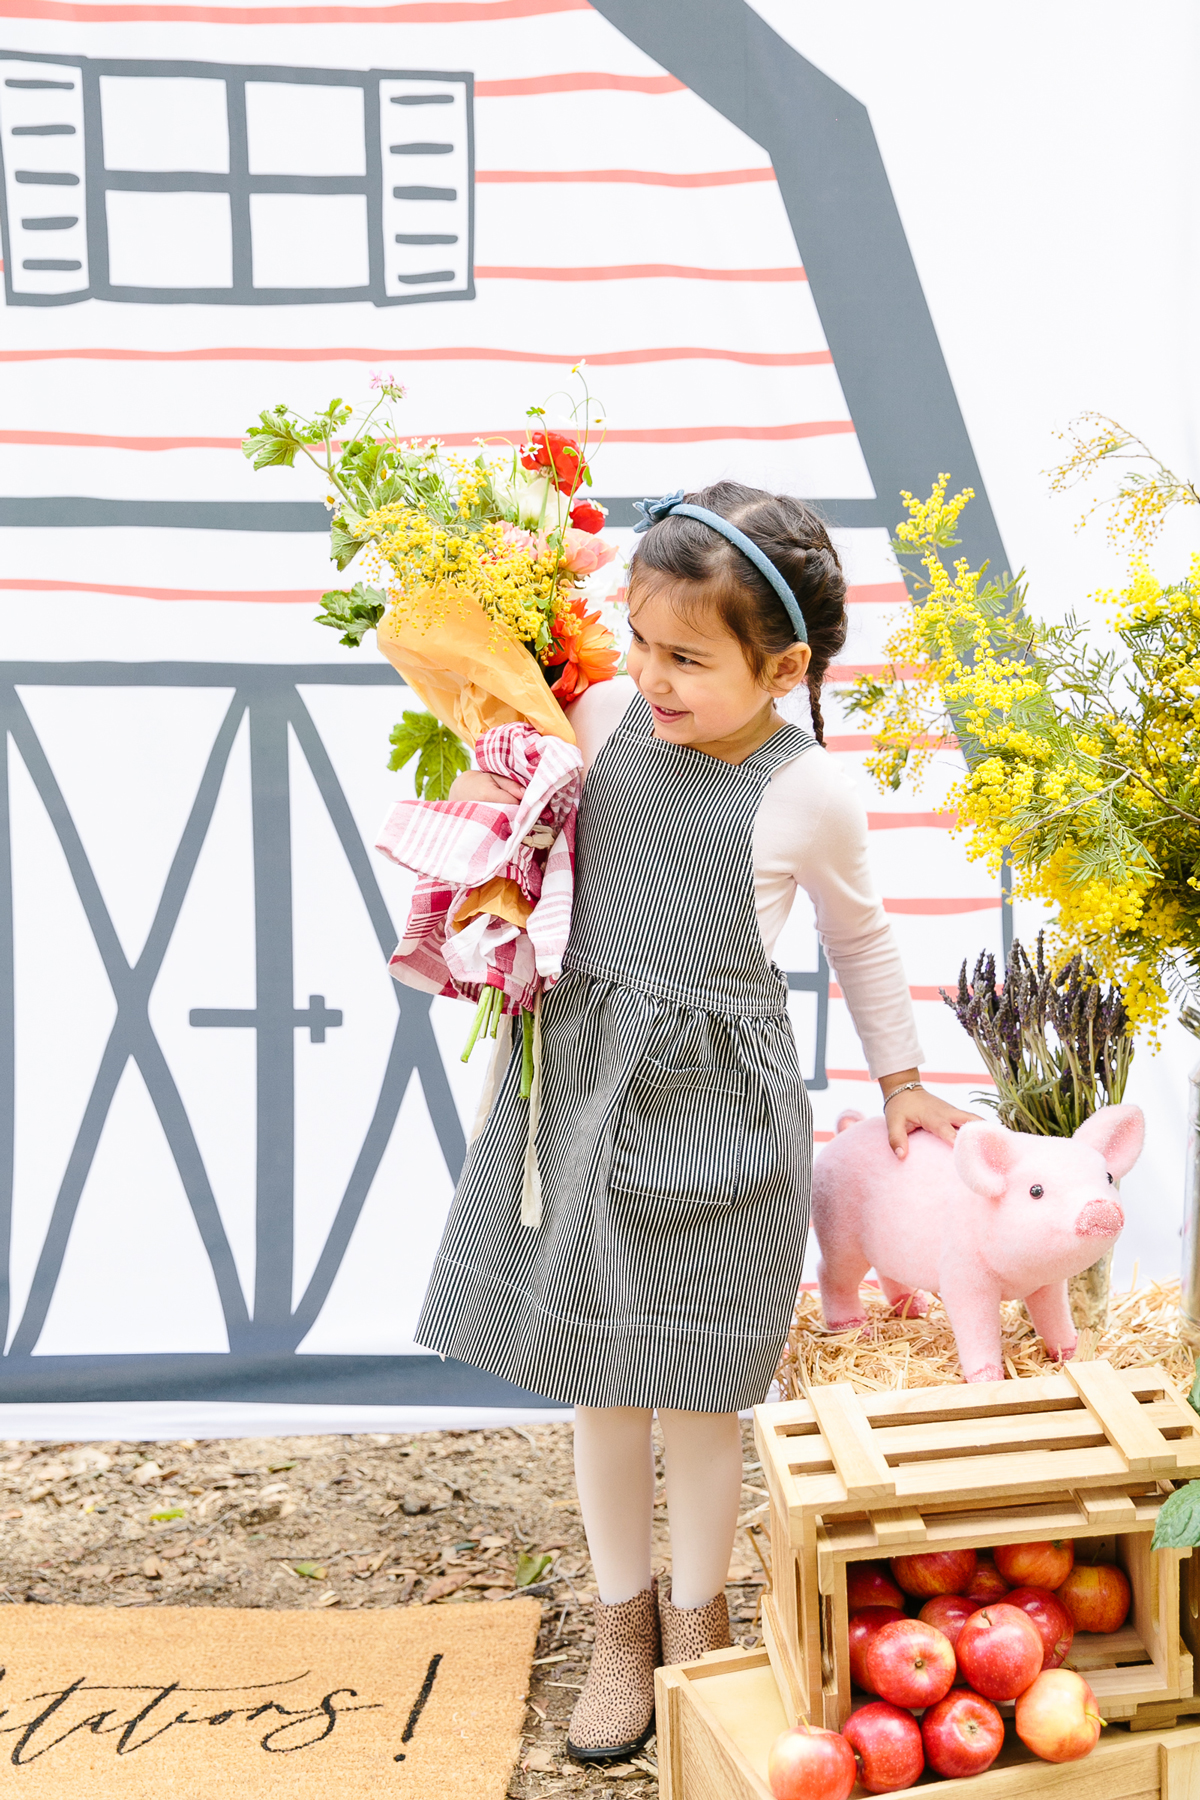 charlottes web childrens party girl holding flowers posing in front of barn backdrop with pig stuffed animal